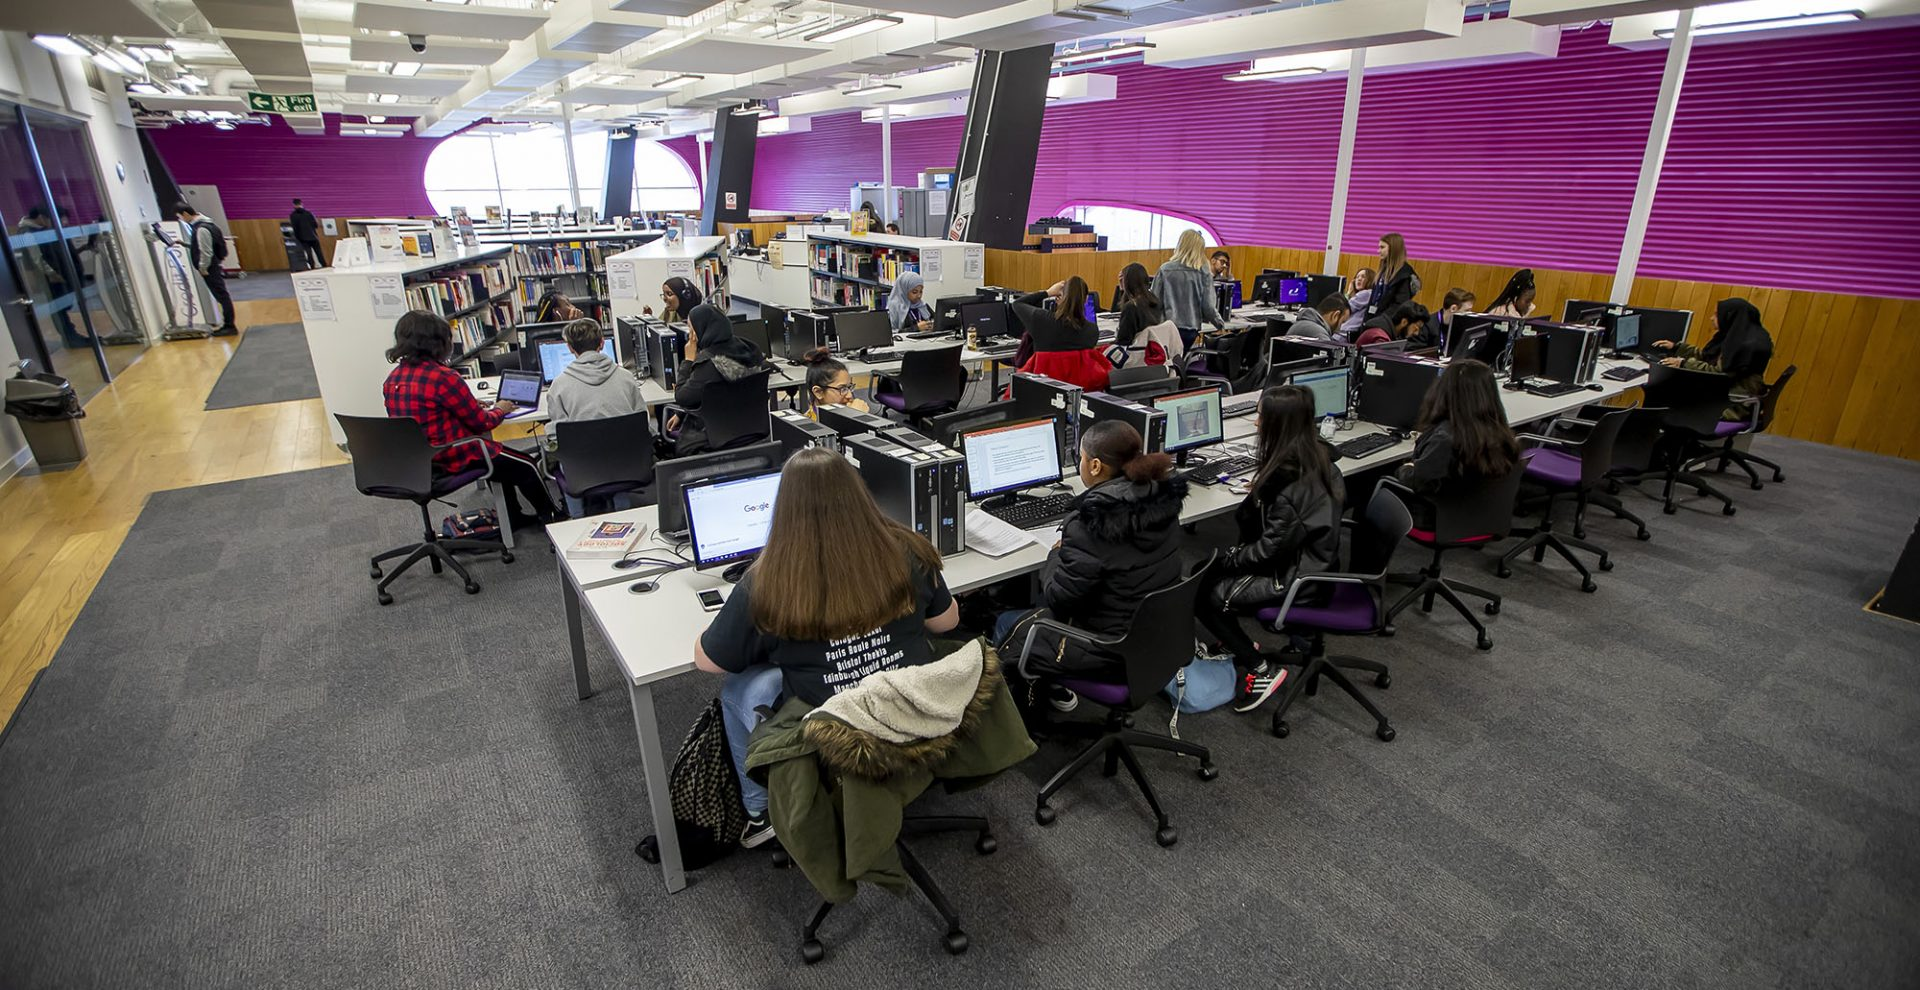 Students in Central St Michael's Sixht Form learning centre